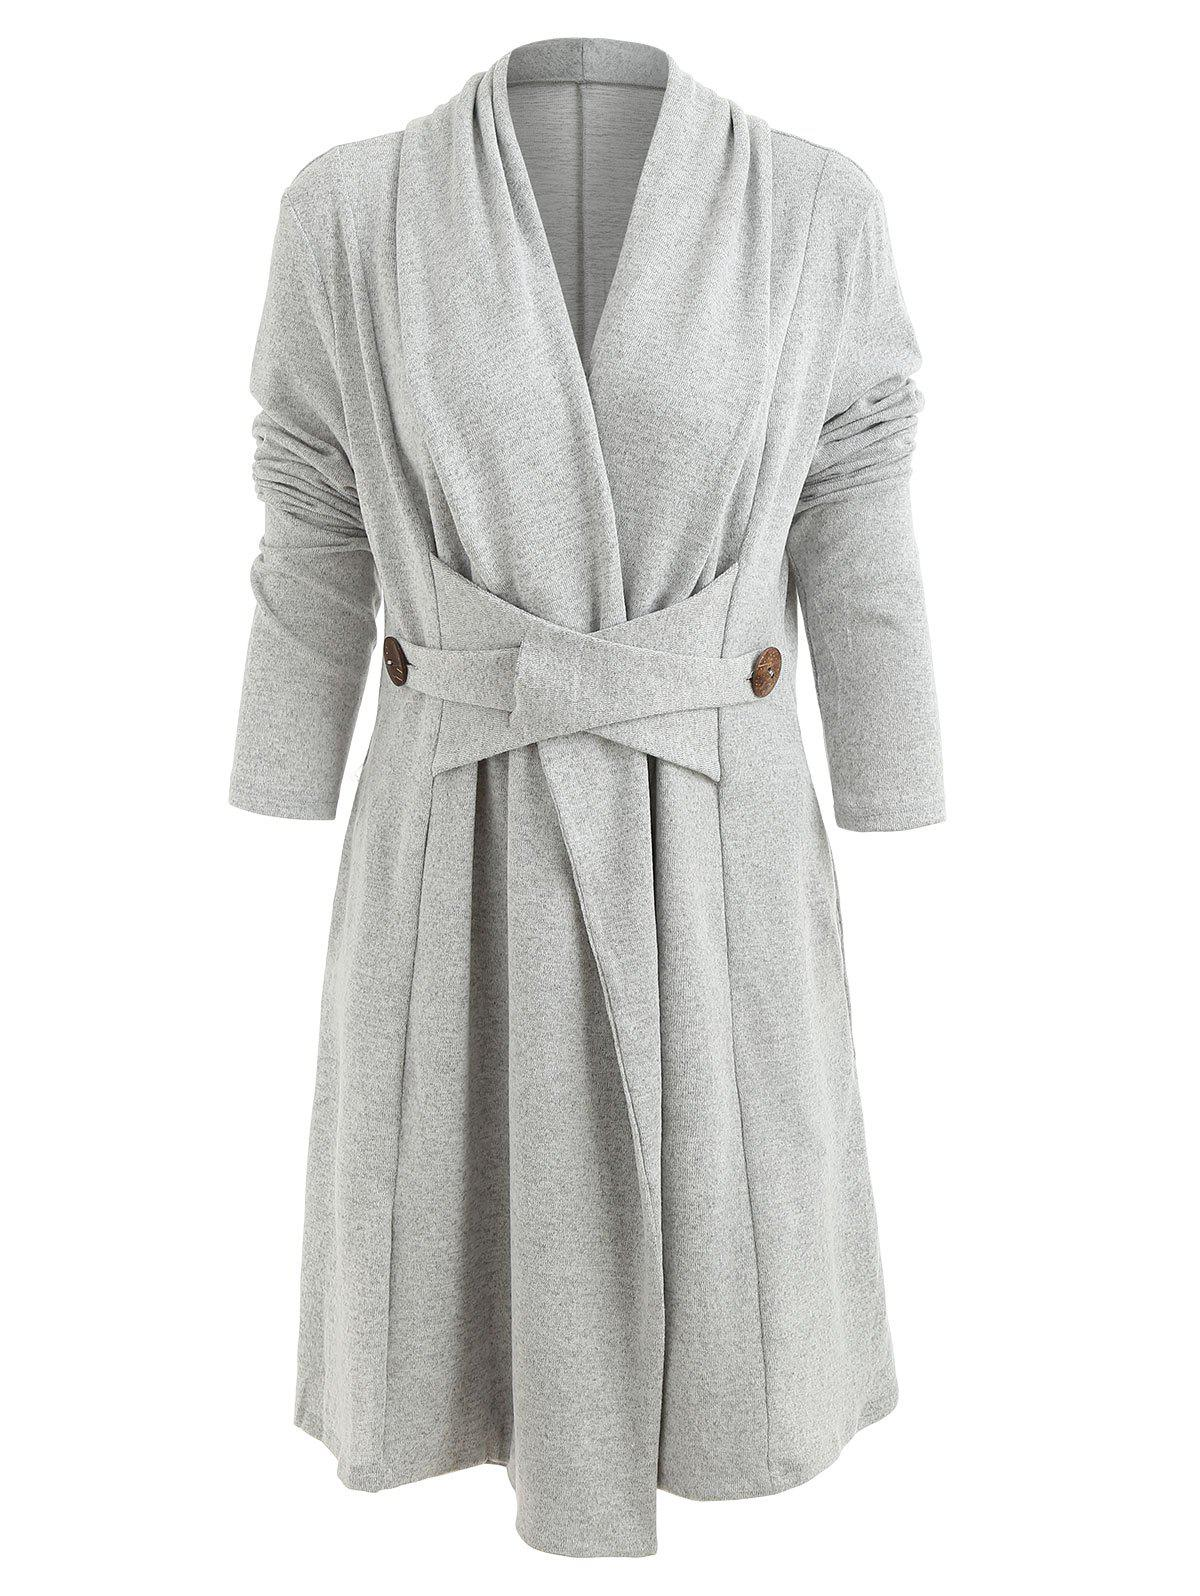 Open Front Button Long Duster Cardigan - LIGHT GRAY L